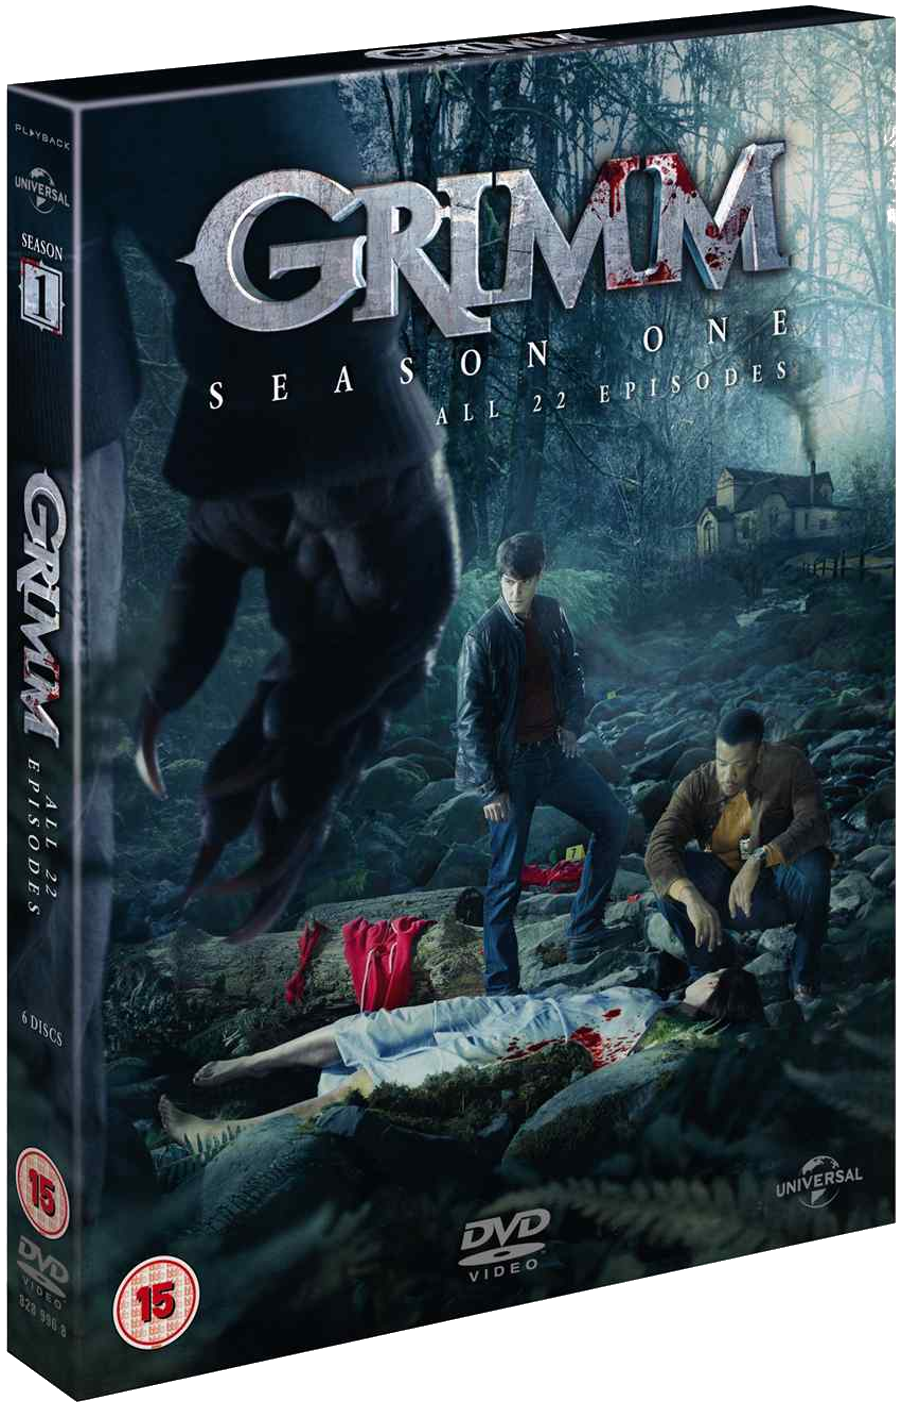 GRIMM Season 1 TV series dvd box set